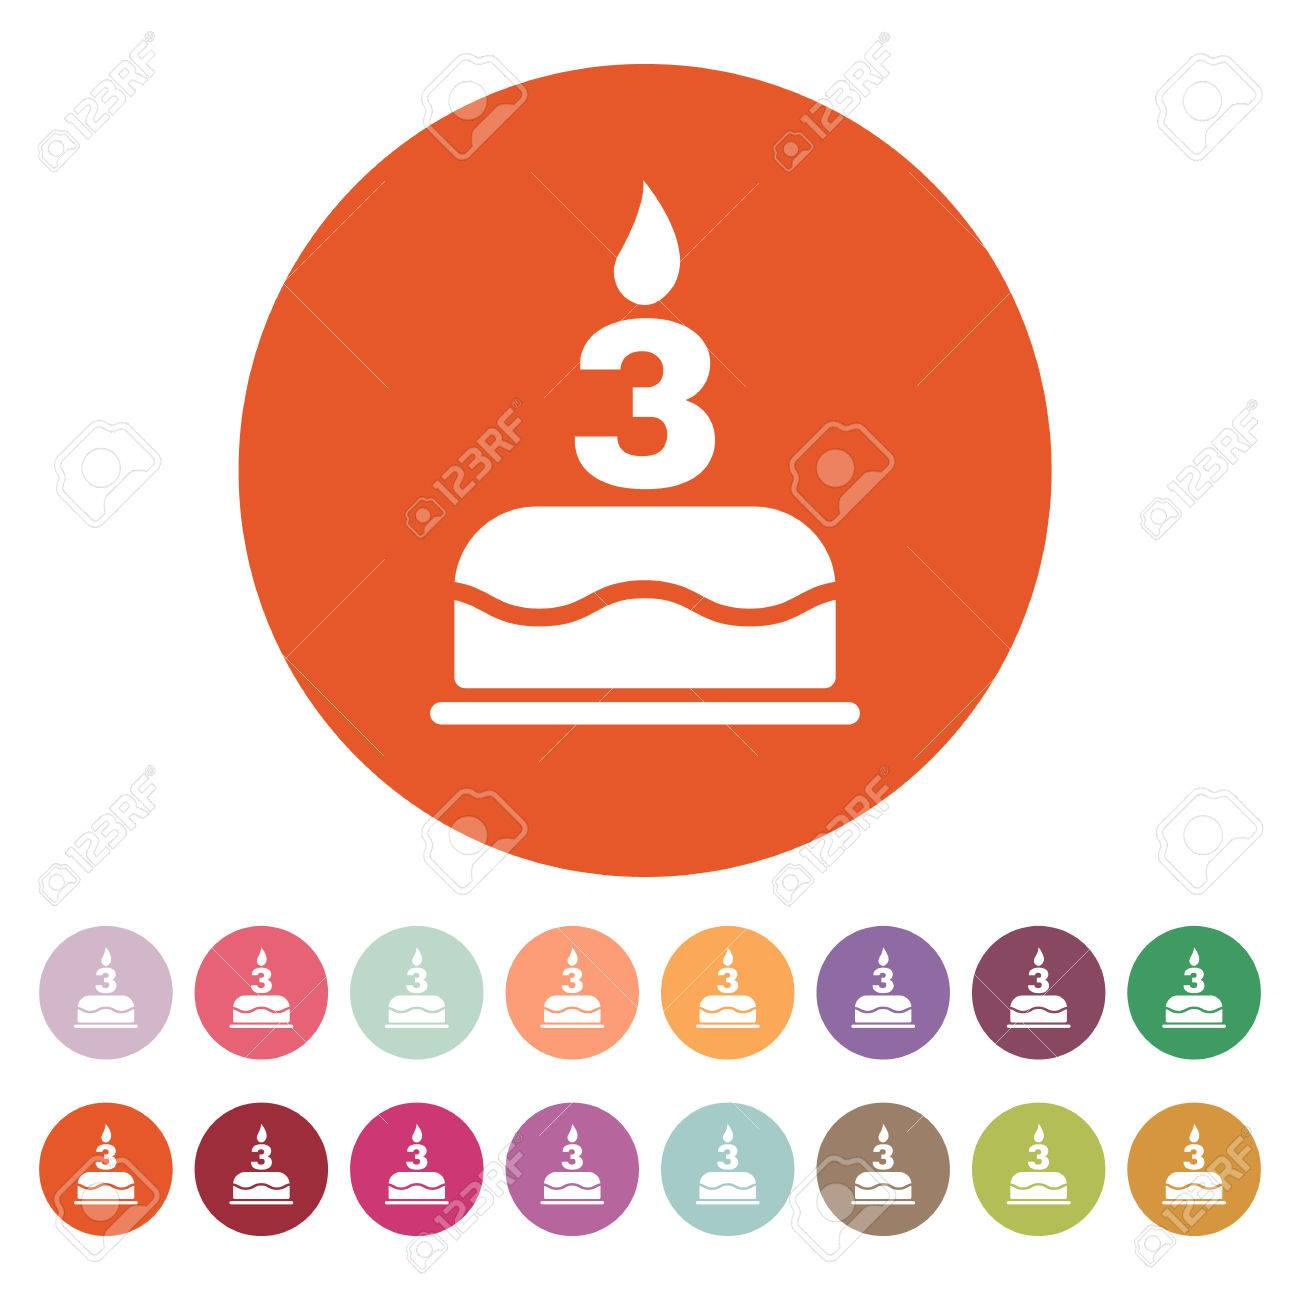 The Birthday Cake With Candles In The Form Of Number 3 Icon